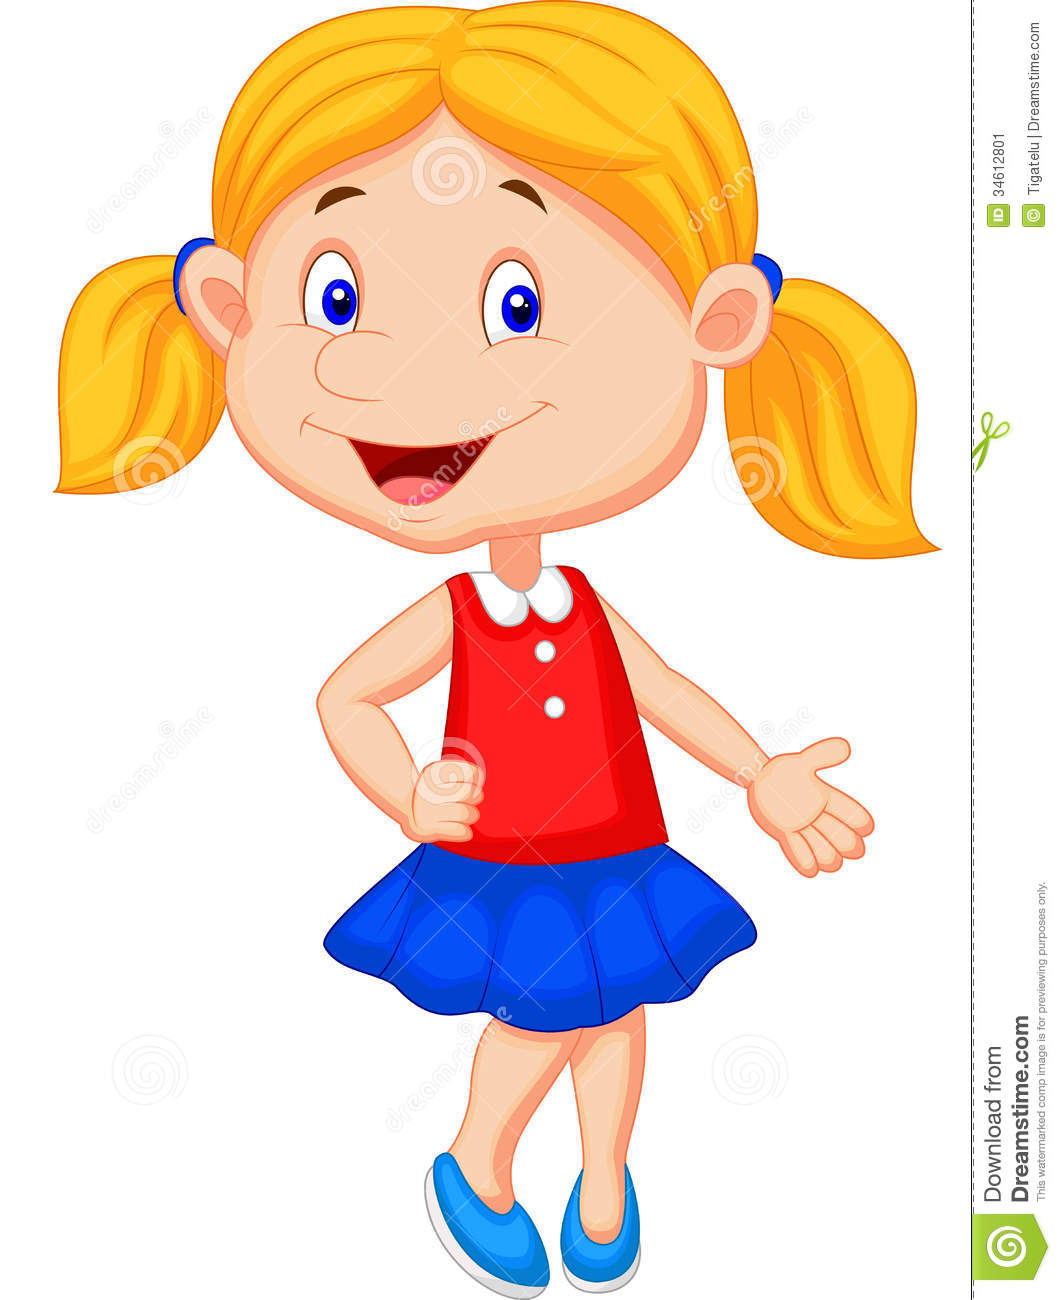 Picture of a girl cartoon